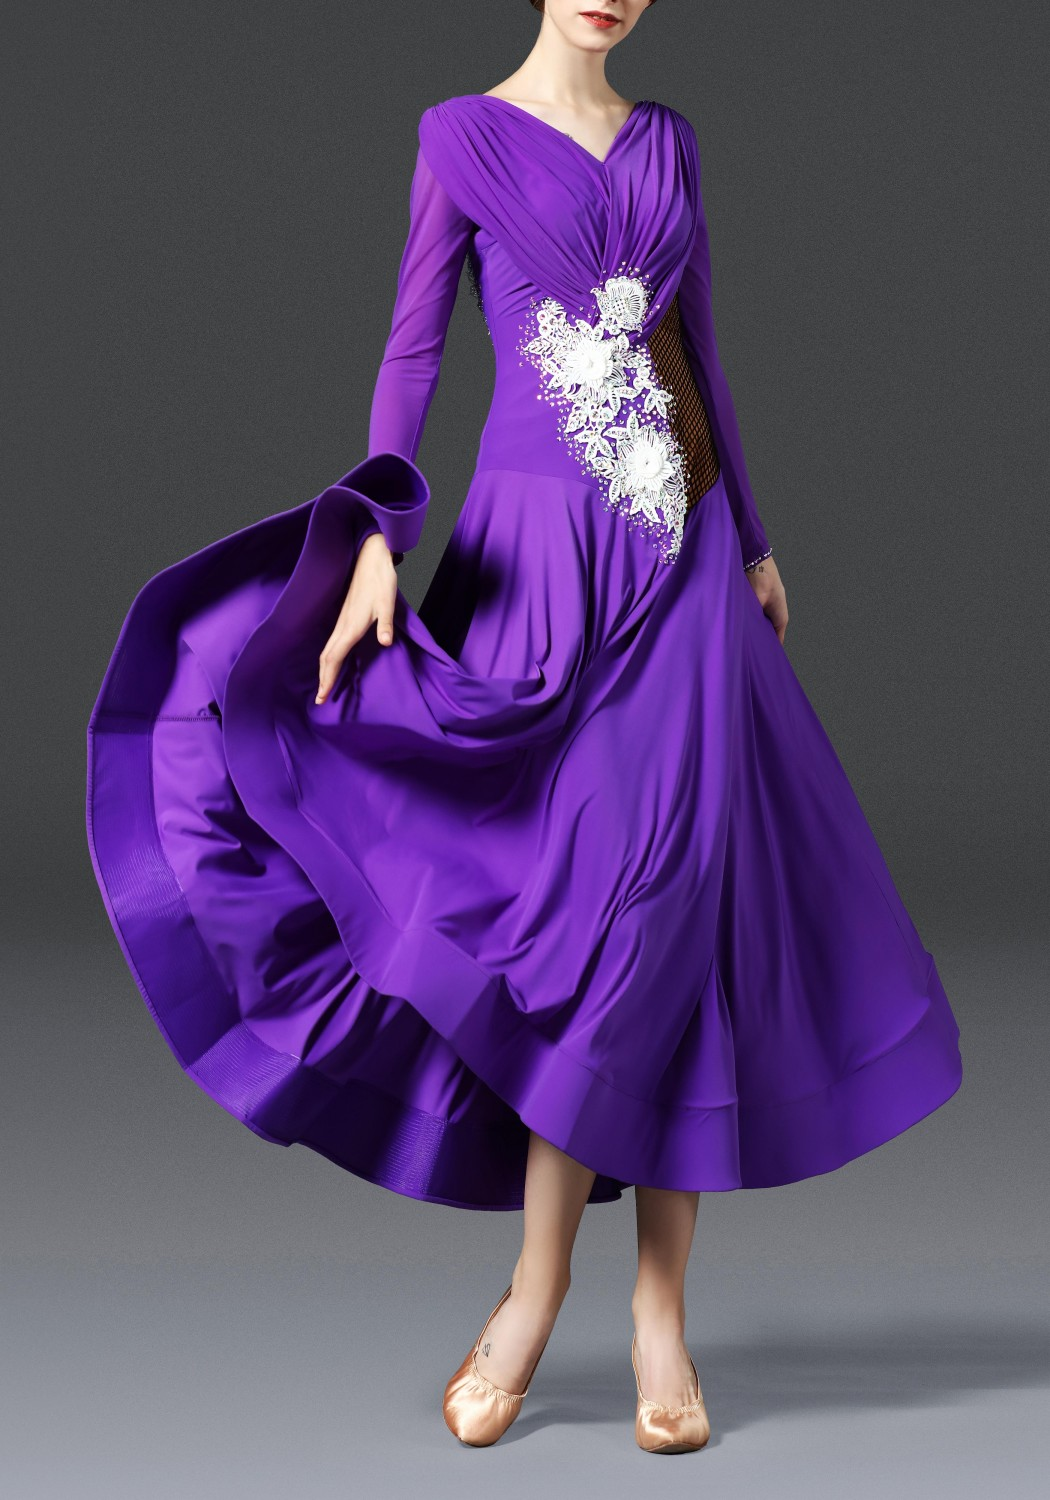 Royal Purple with White Flower Ballroom Smooth Practice Dance Dress